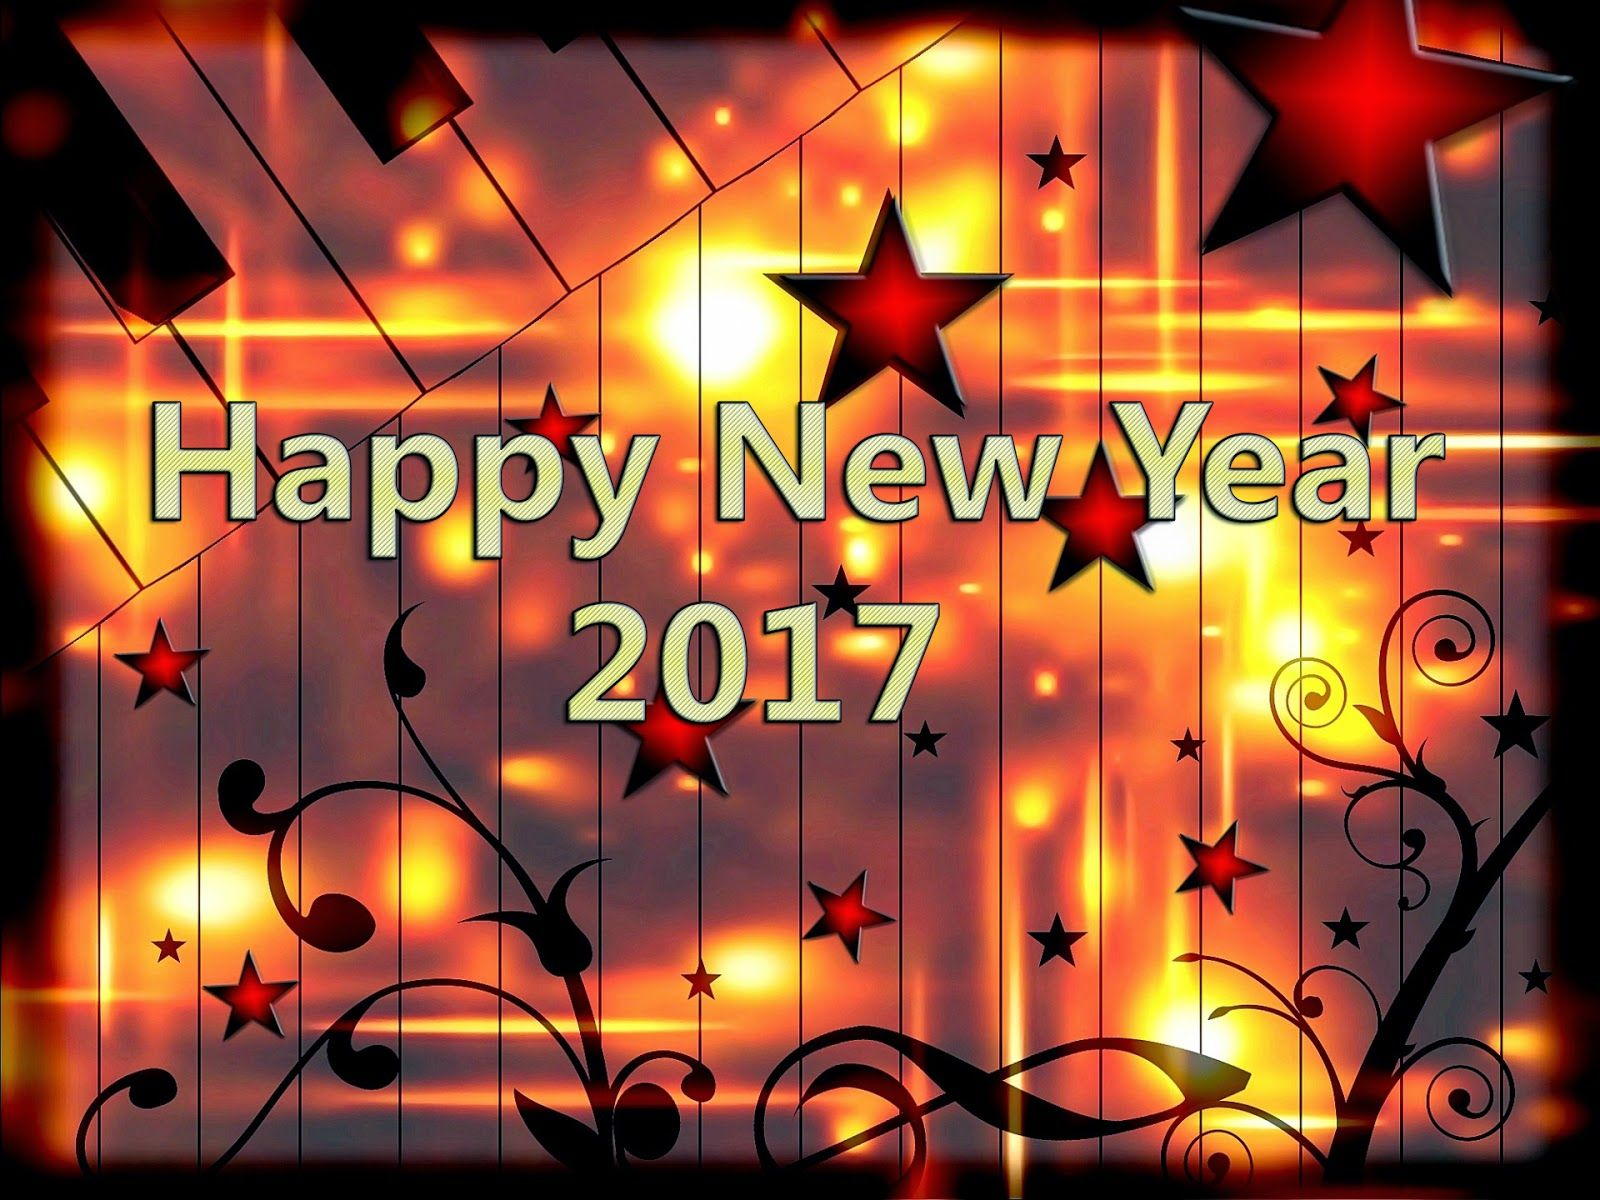 Wallpaper download 2017 - You Will Find Here The Best Collection Of Happy New Year 2017 Images Hd Wallpaper